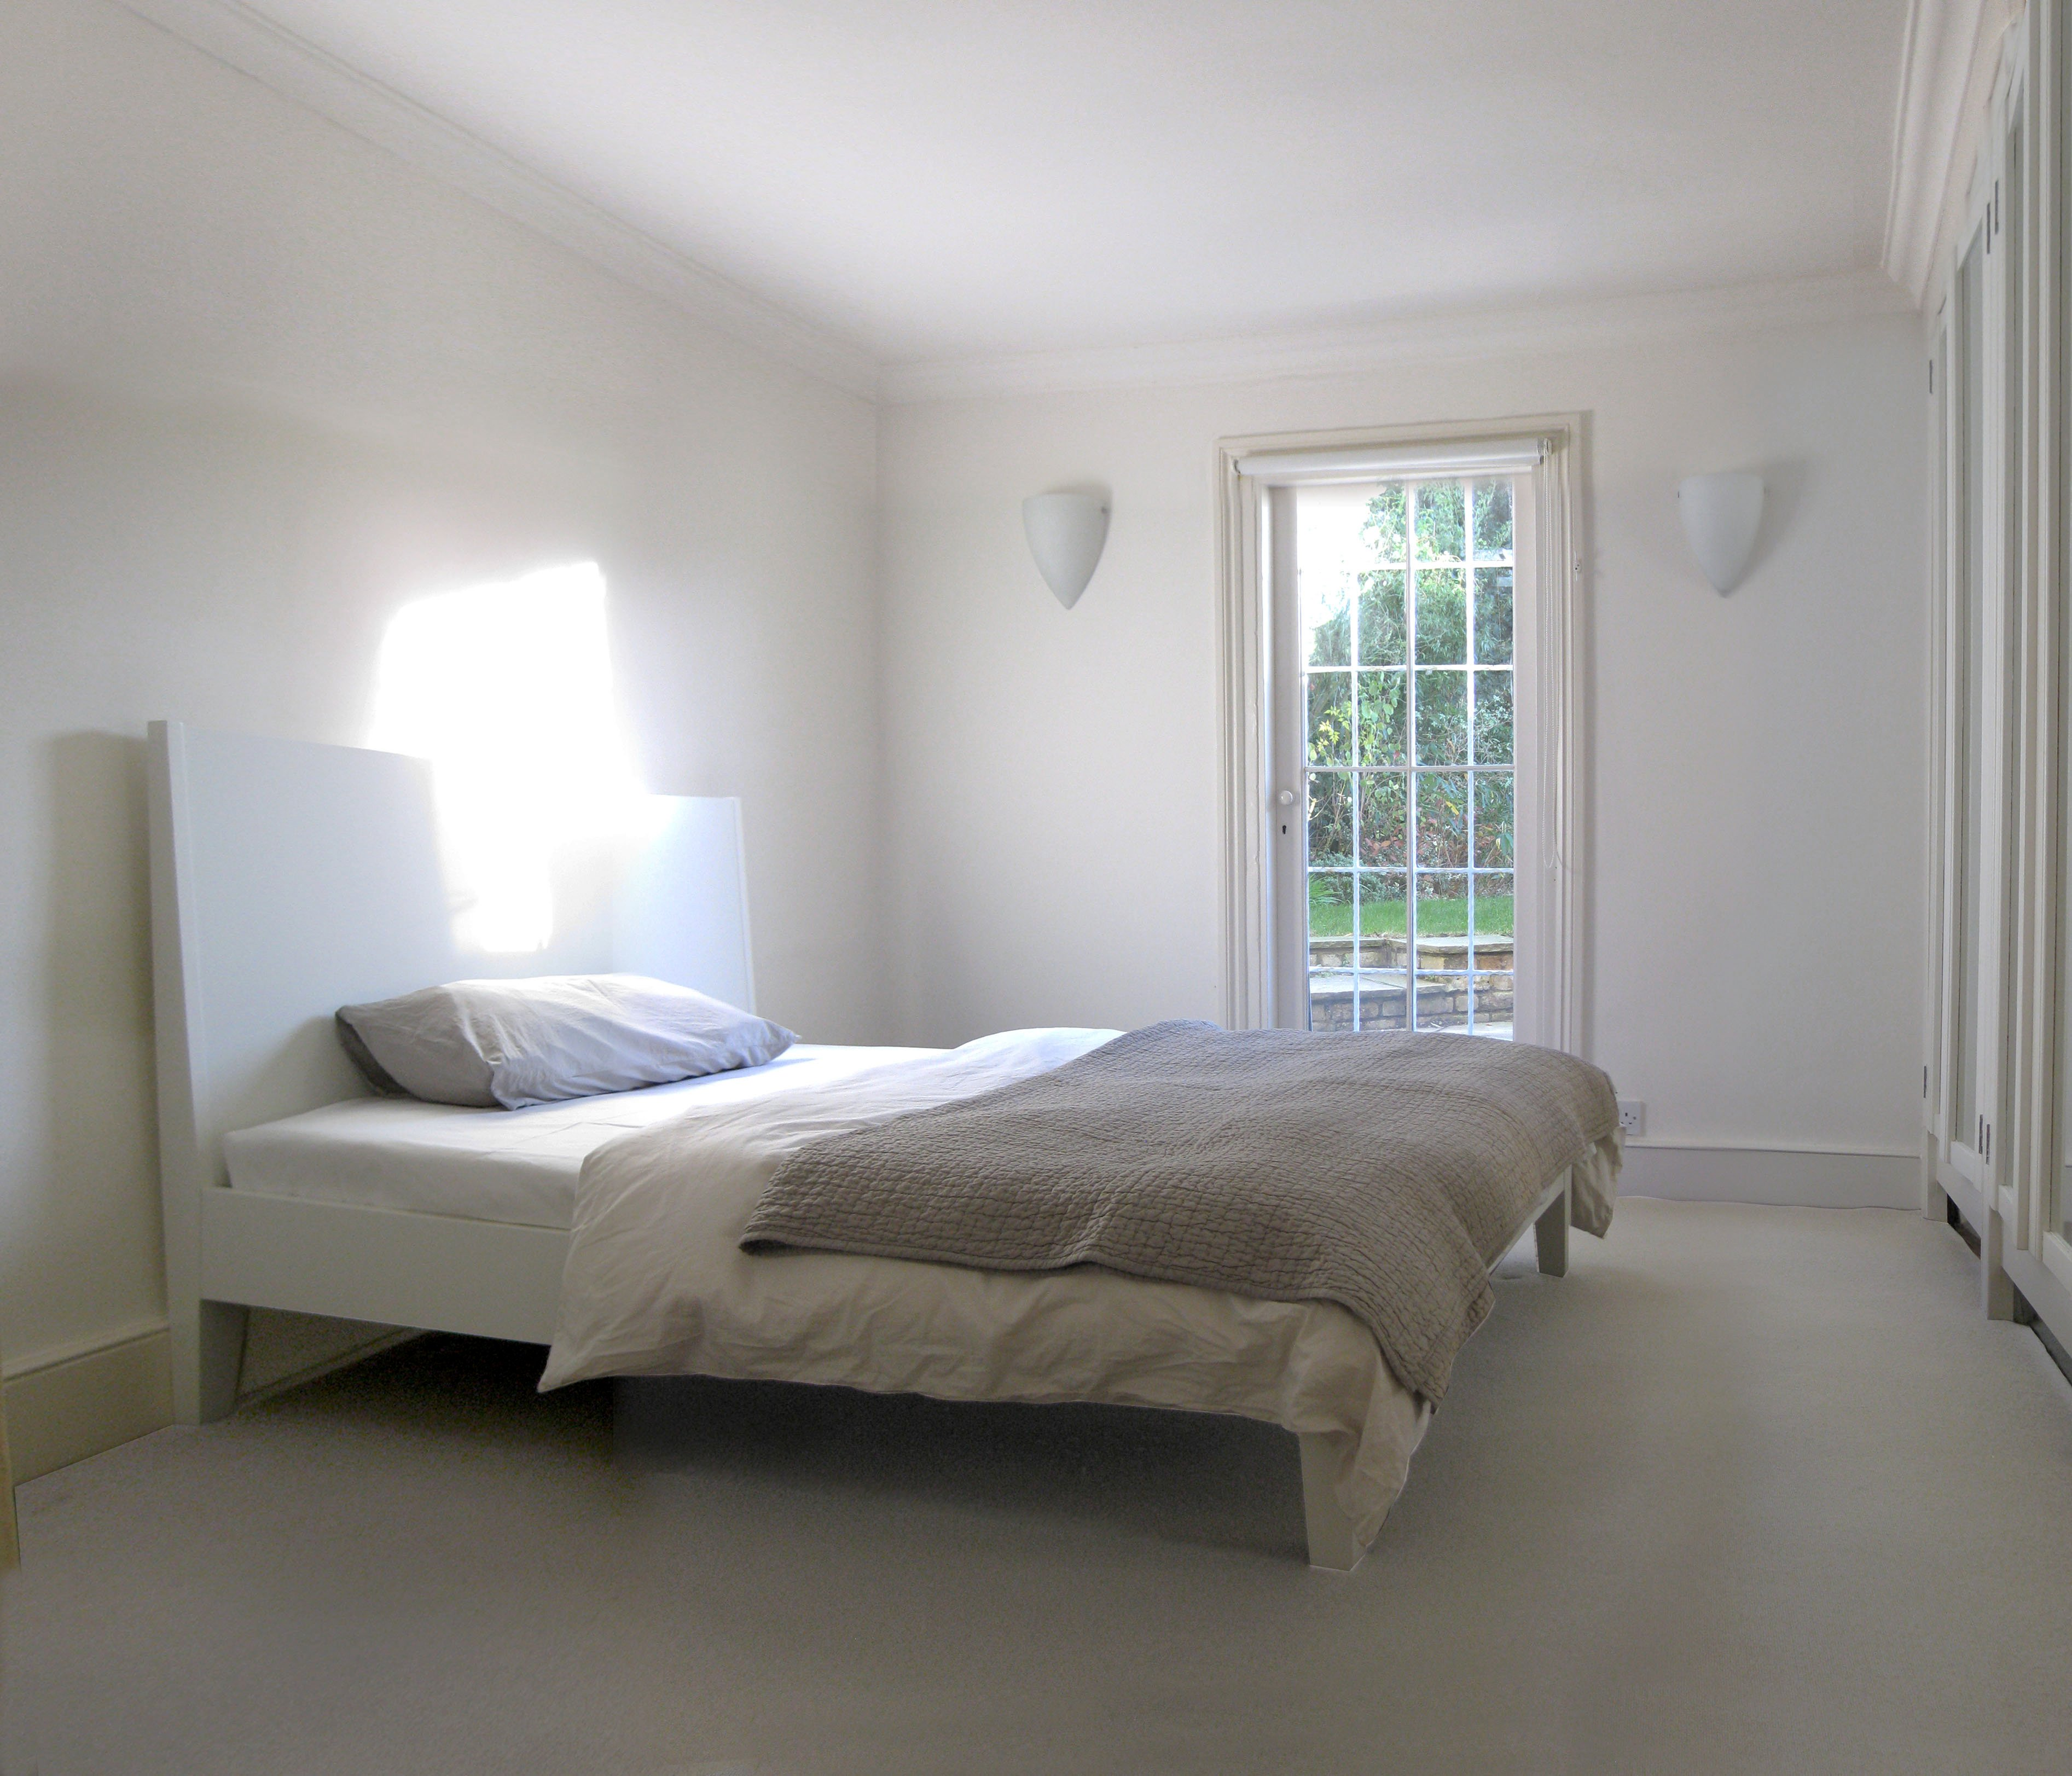 One Bedroom Apartment London Rent: 2 Bed Flat/Apartment